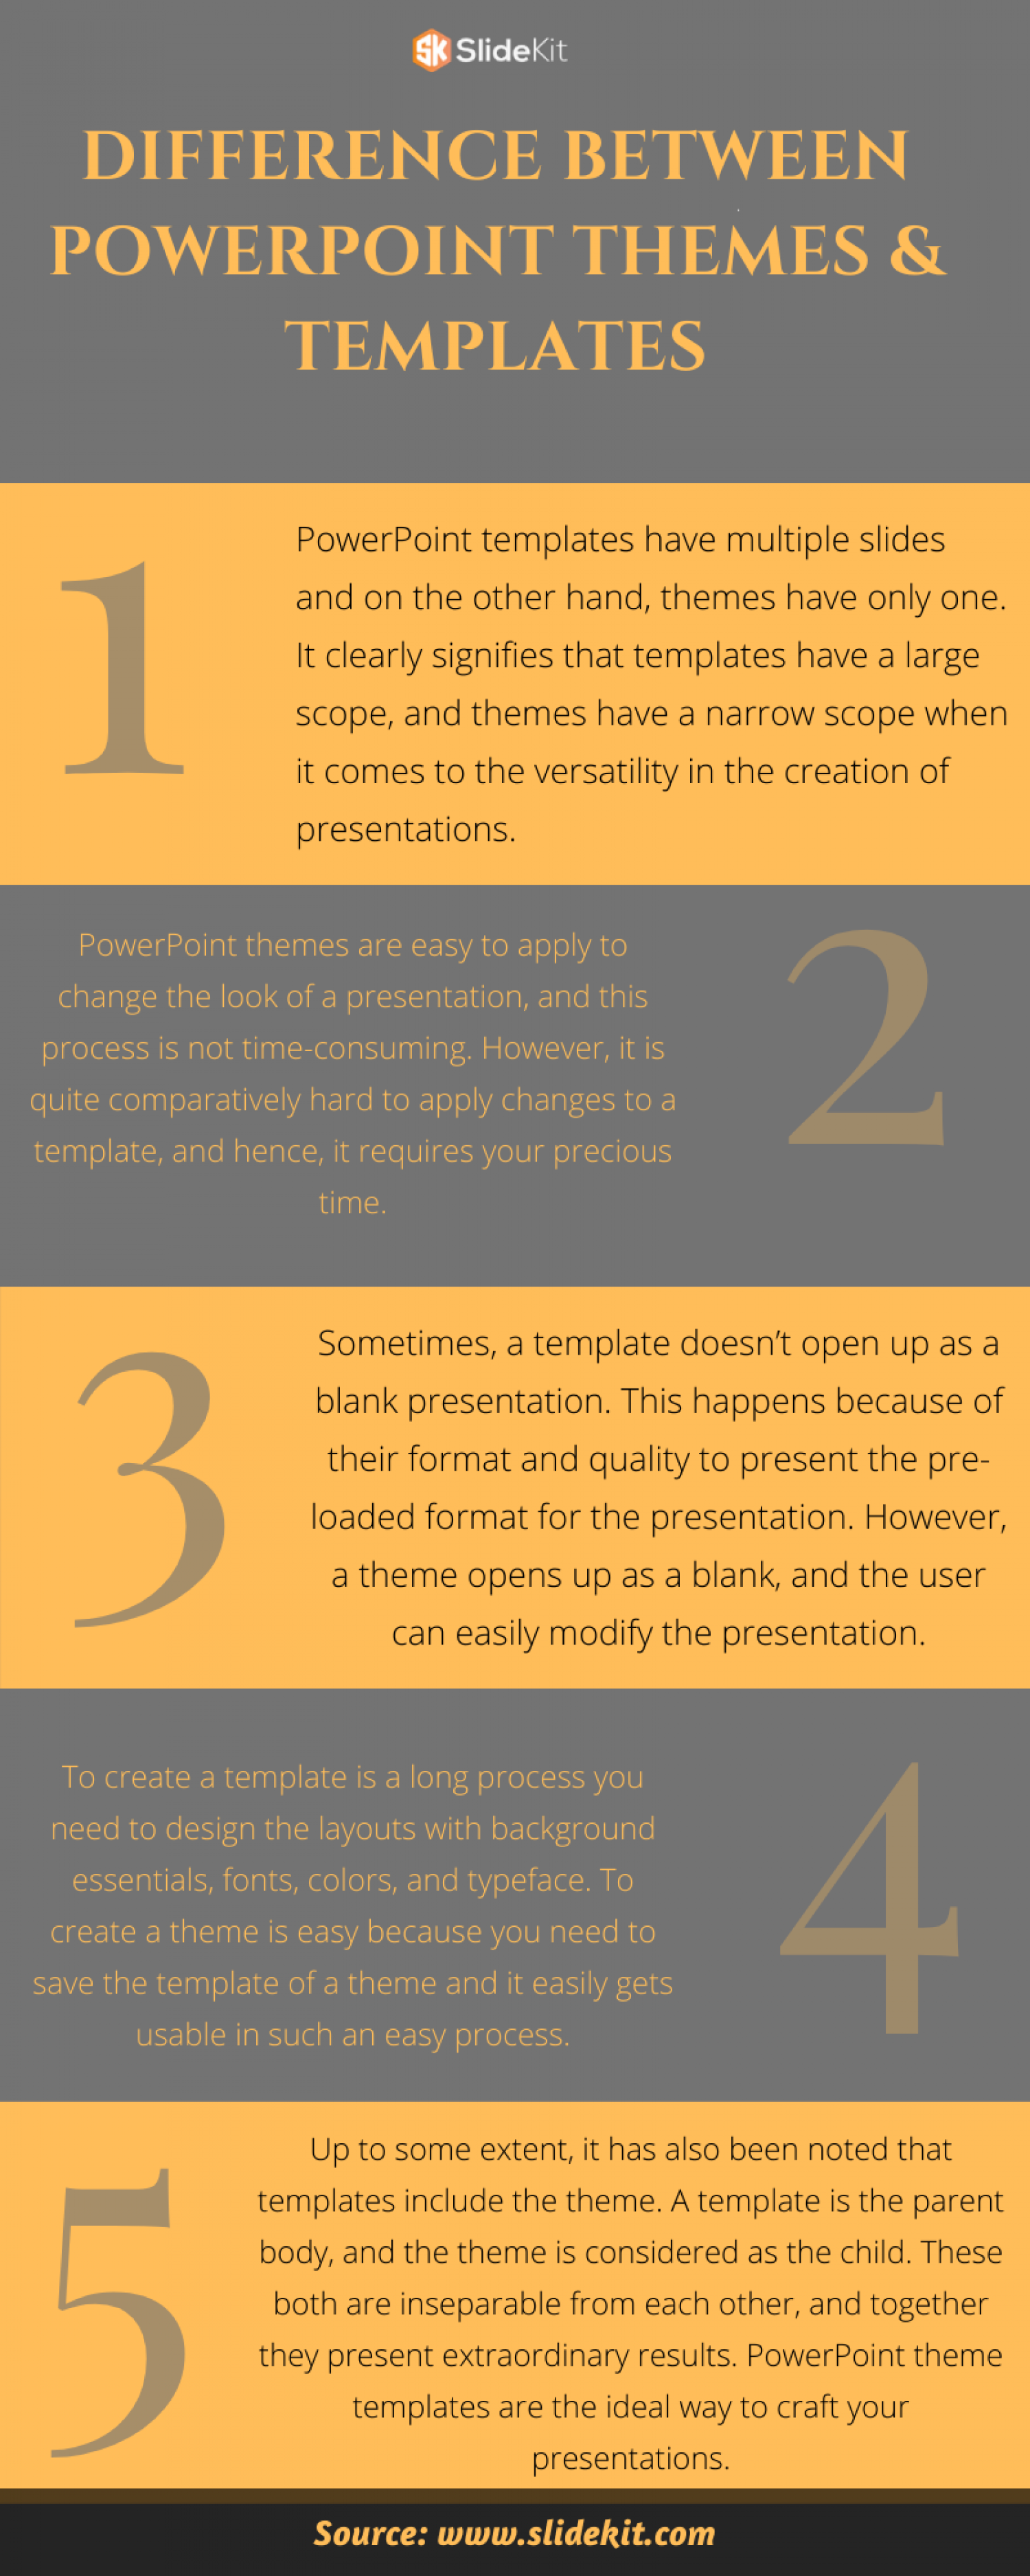 Difference Between PowerPoint Themes & Templates Infographic